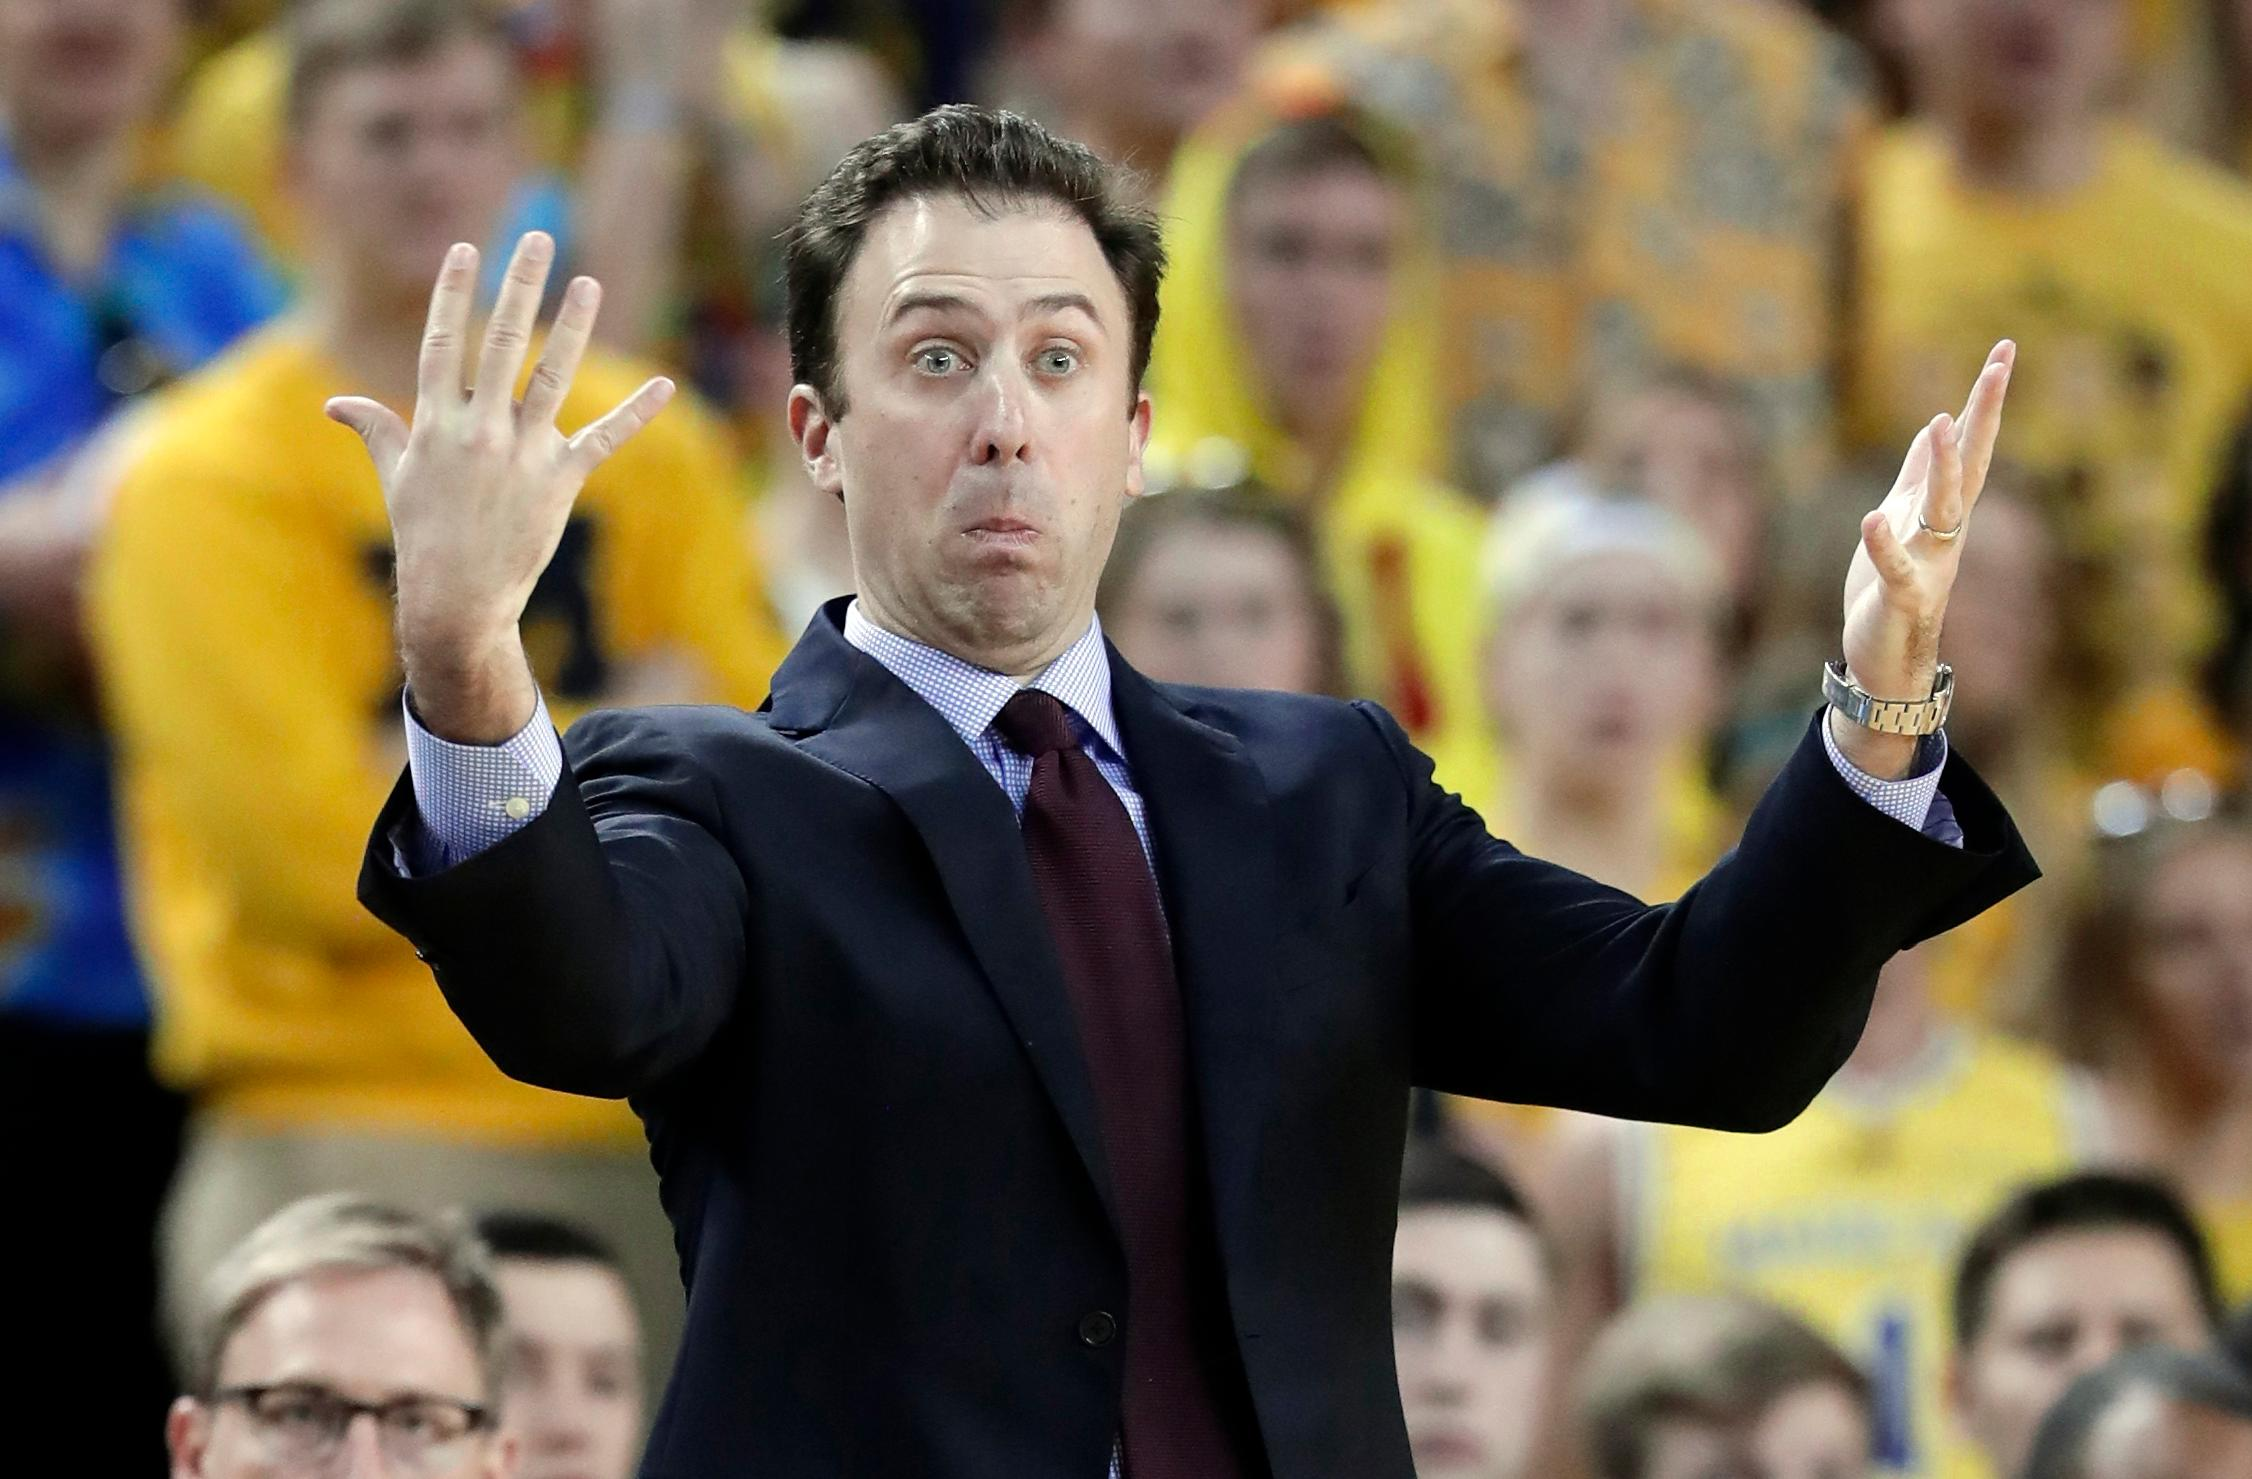 Minnesota head coach Richard Pitino gestures during the first half of an NCAA college basketball game against Michigan, Saturday, Feb. 3,2018, in Ann Arbor, Mich. (AP Photo/Carlos Osorio)